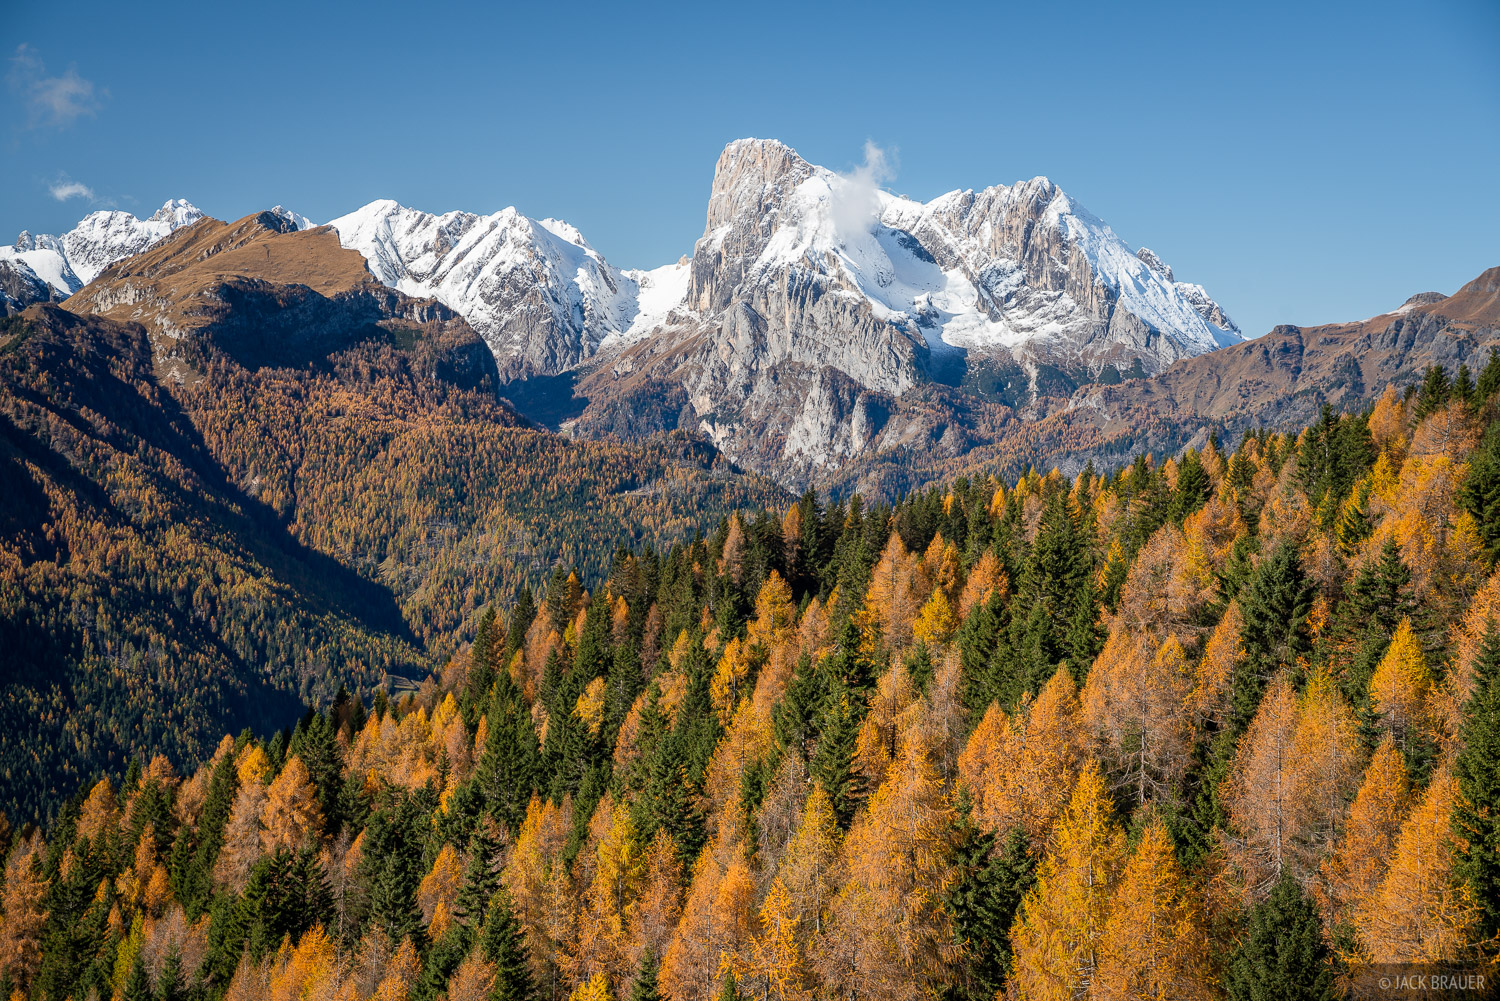 Marmolada rises behind a valley of larch trees.